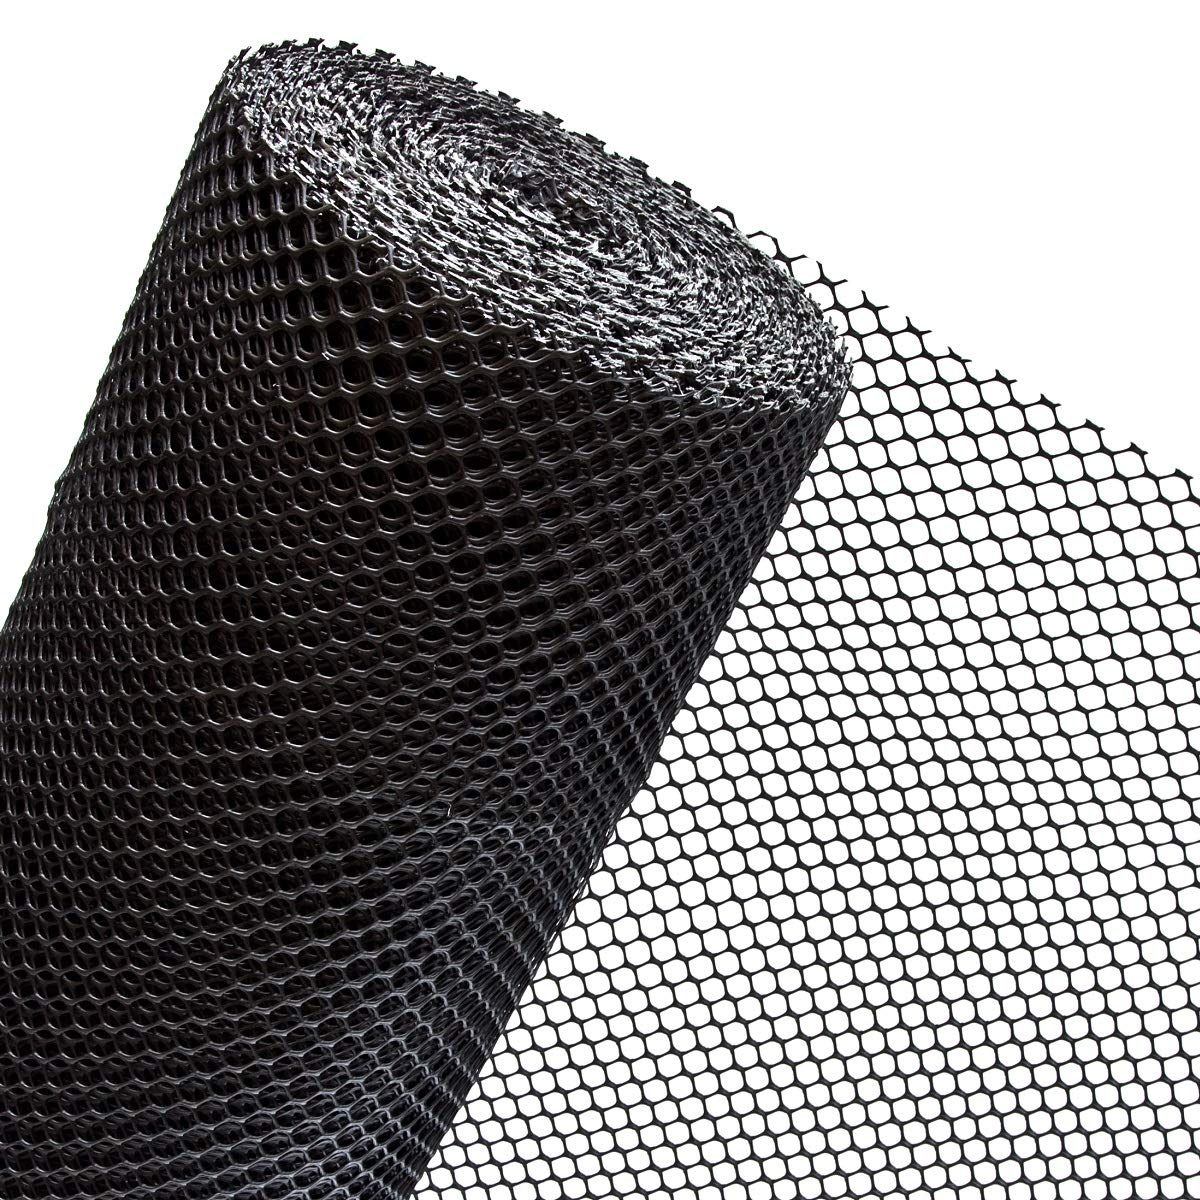 Anti-Mole Netting Width 1m for Mounting Vertically (Price per Metre)